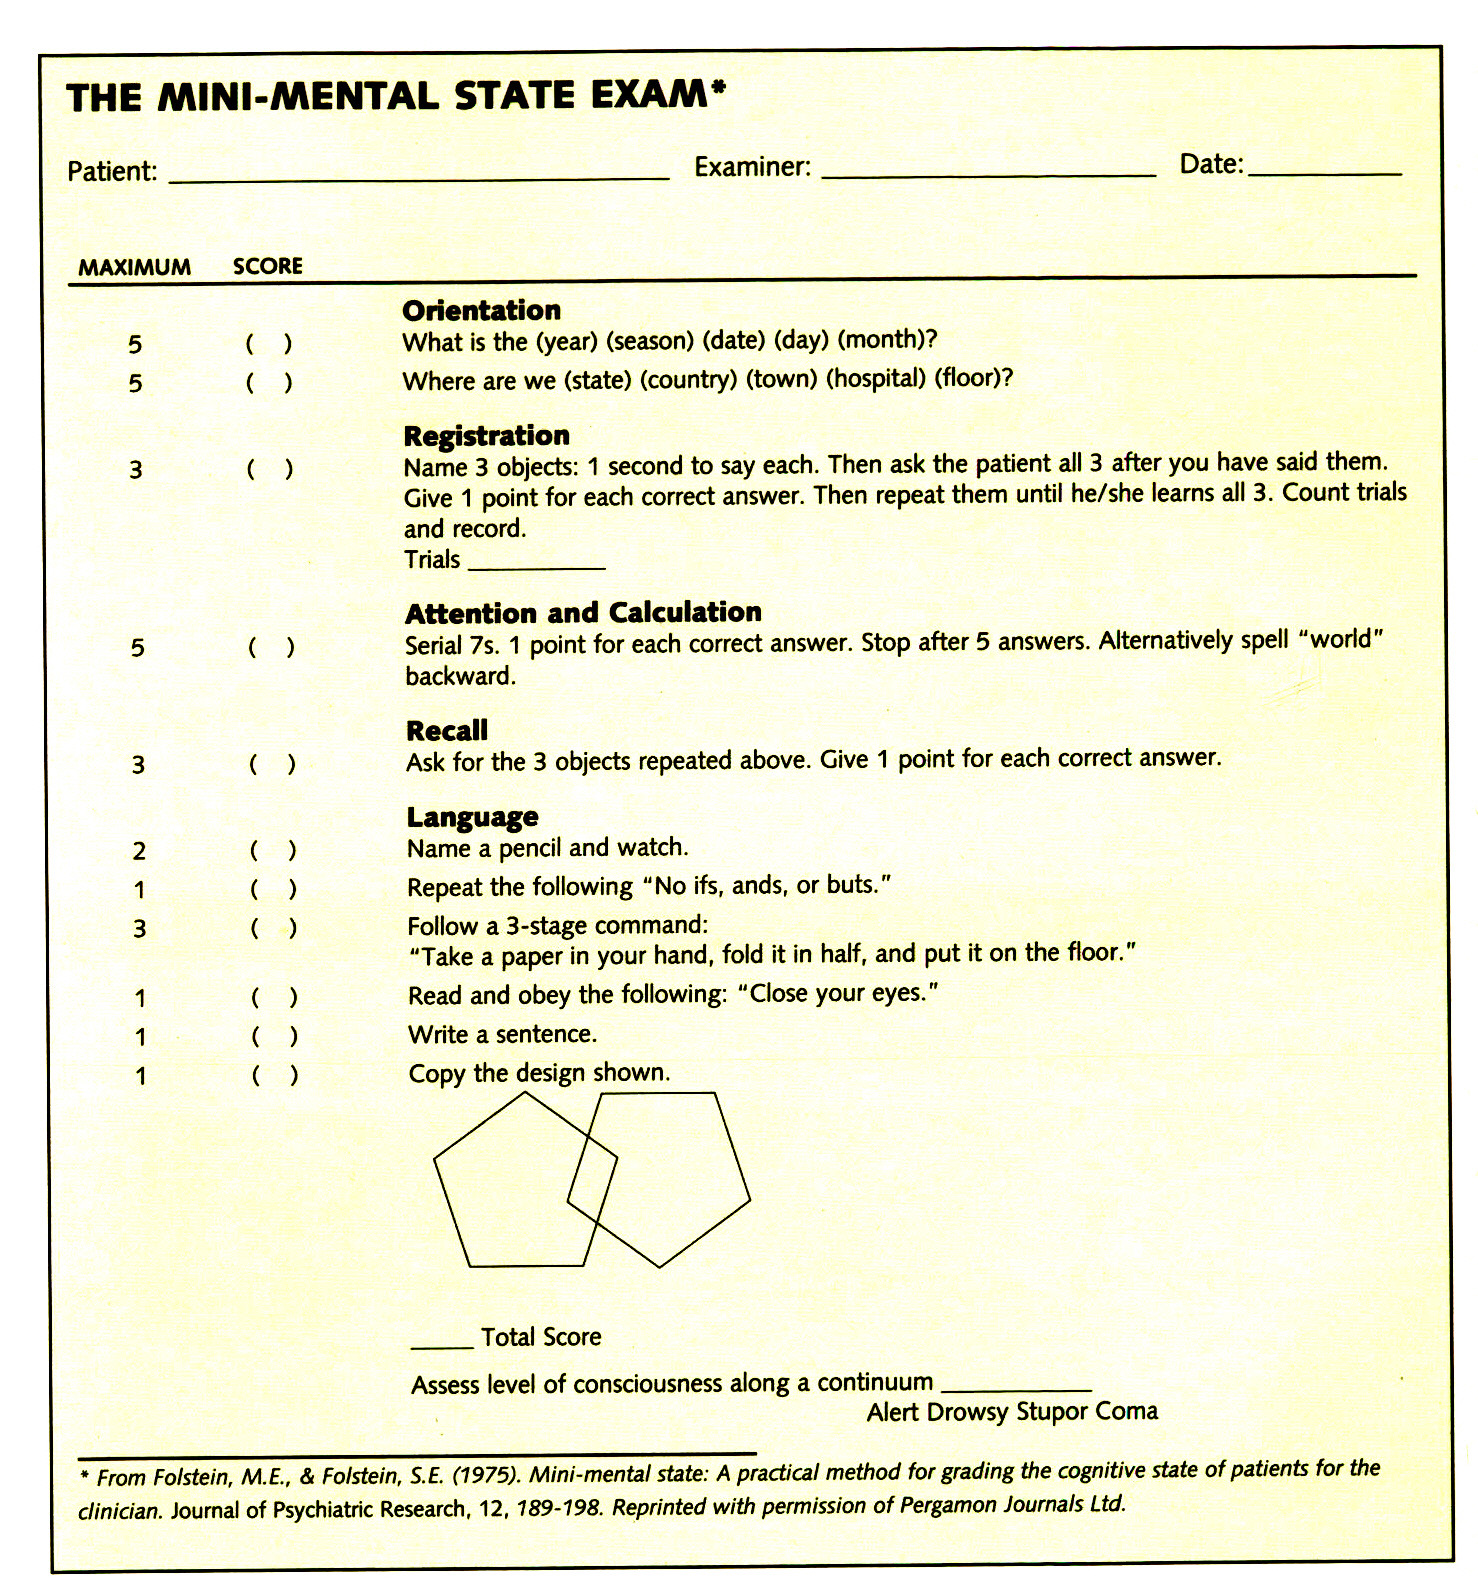 Relativ The Mini-Mental State Examination (MMSE) DA88